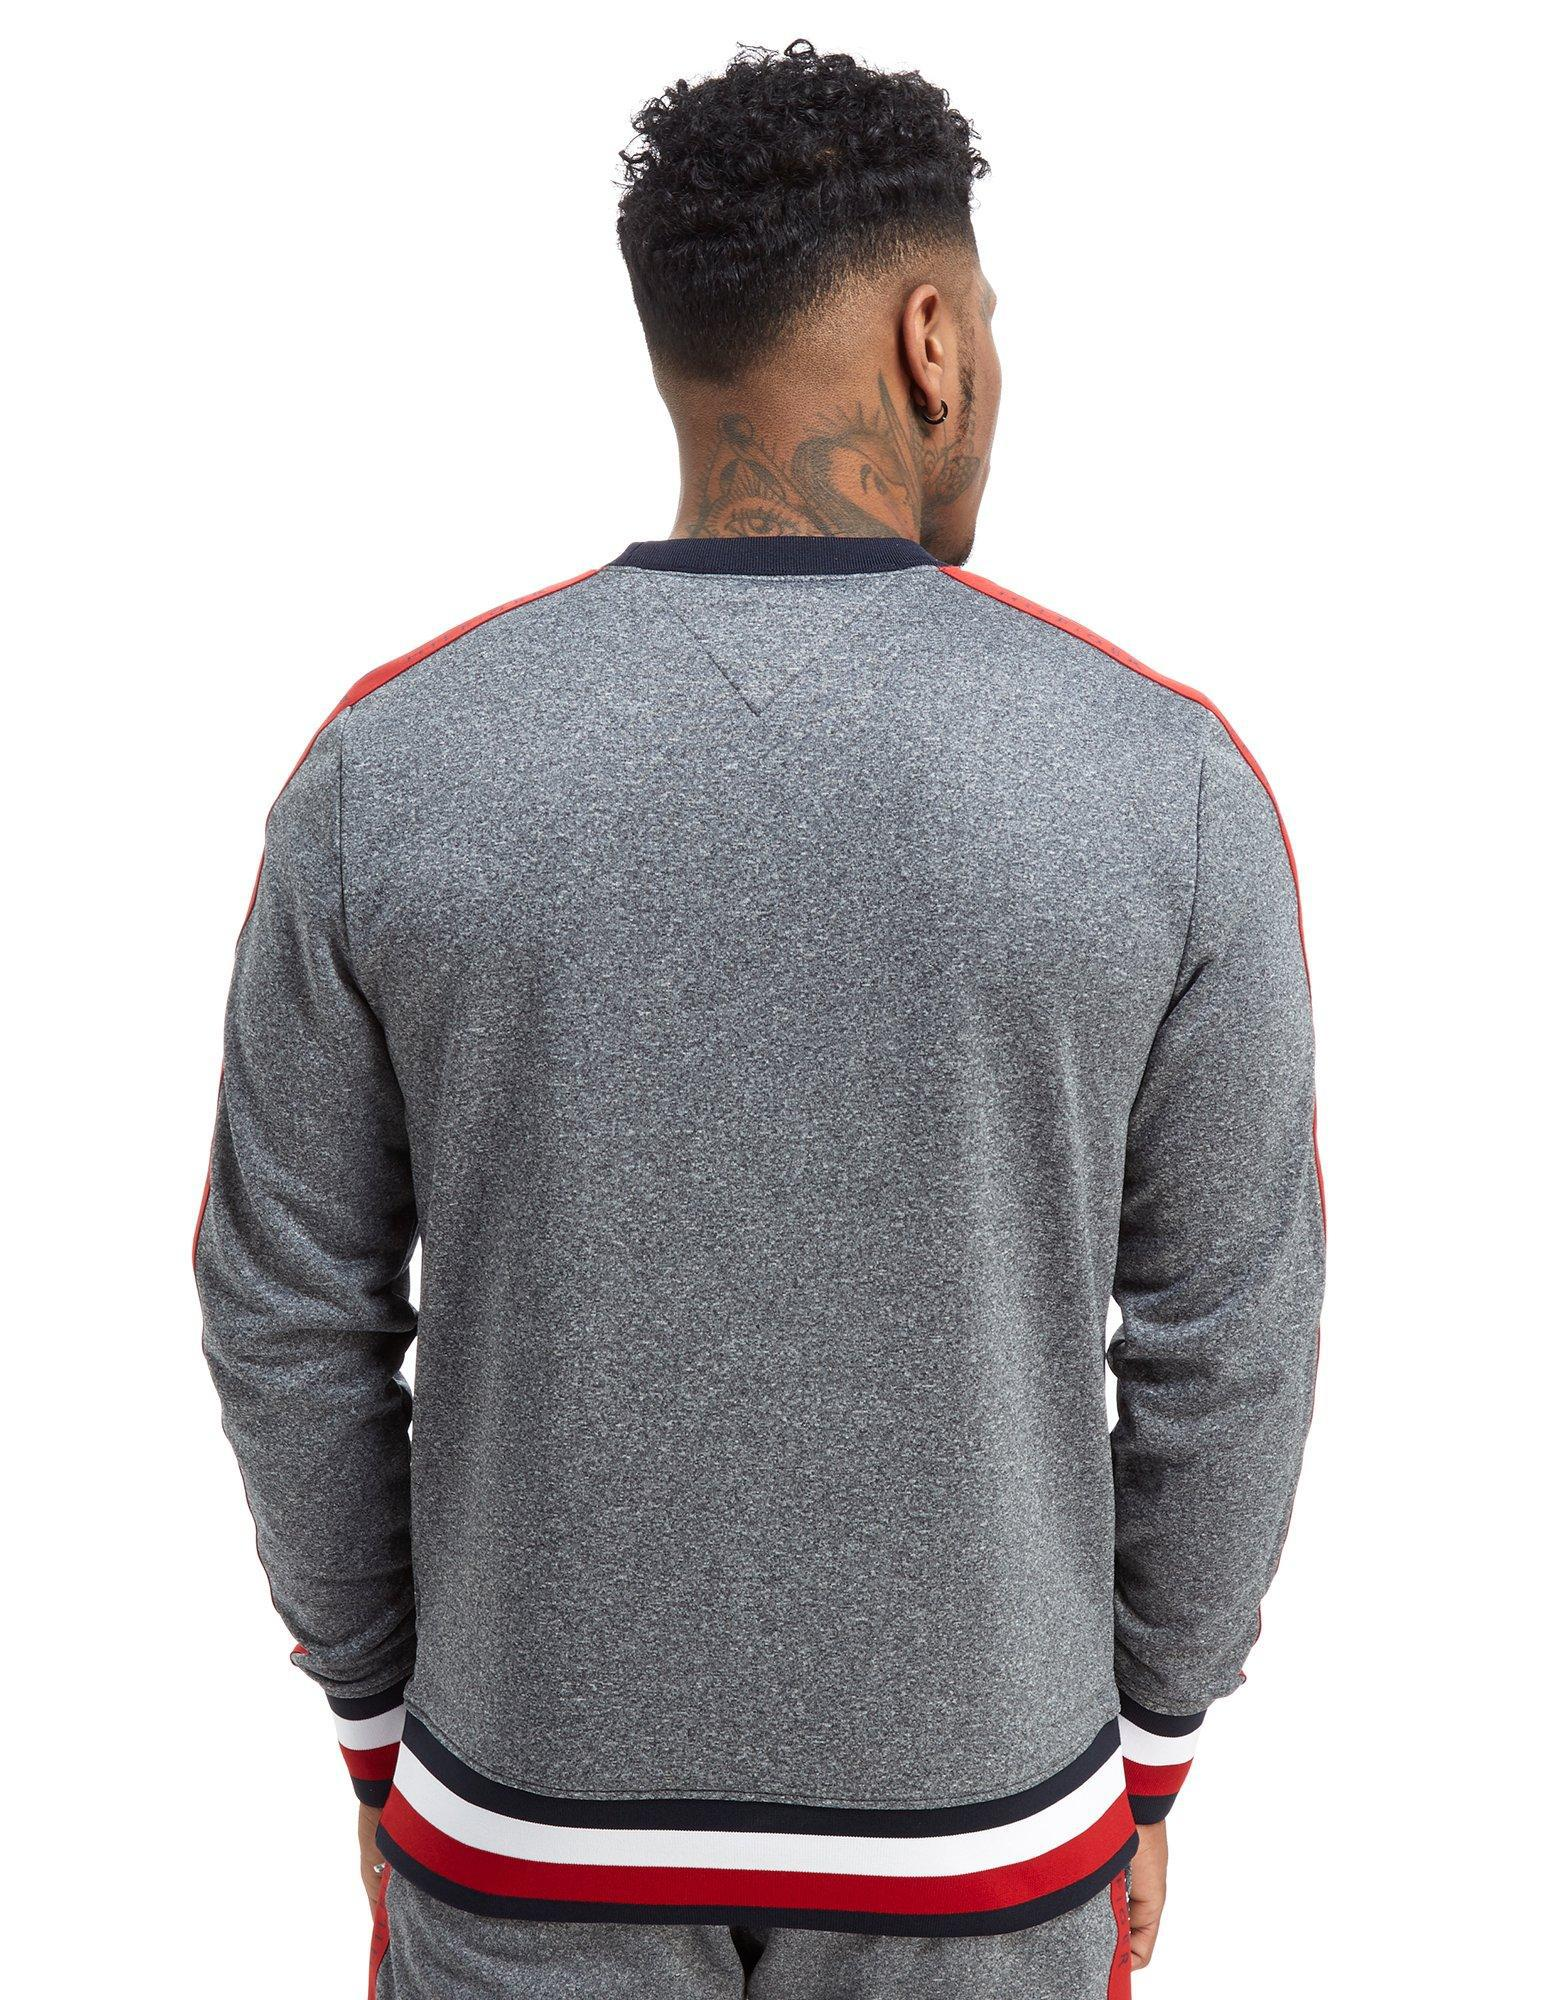 a46bb2eb Tommy Hilfiger Tech Terry Tape Crew Sweatshirt in Gray for Men - Lyst